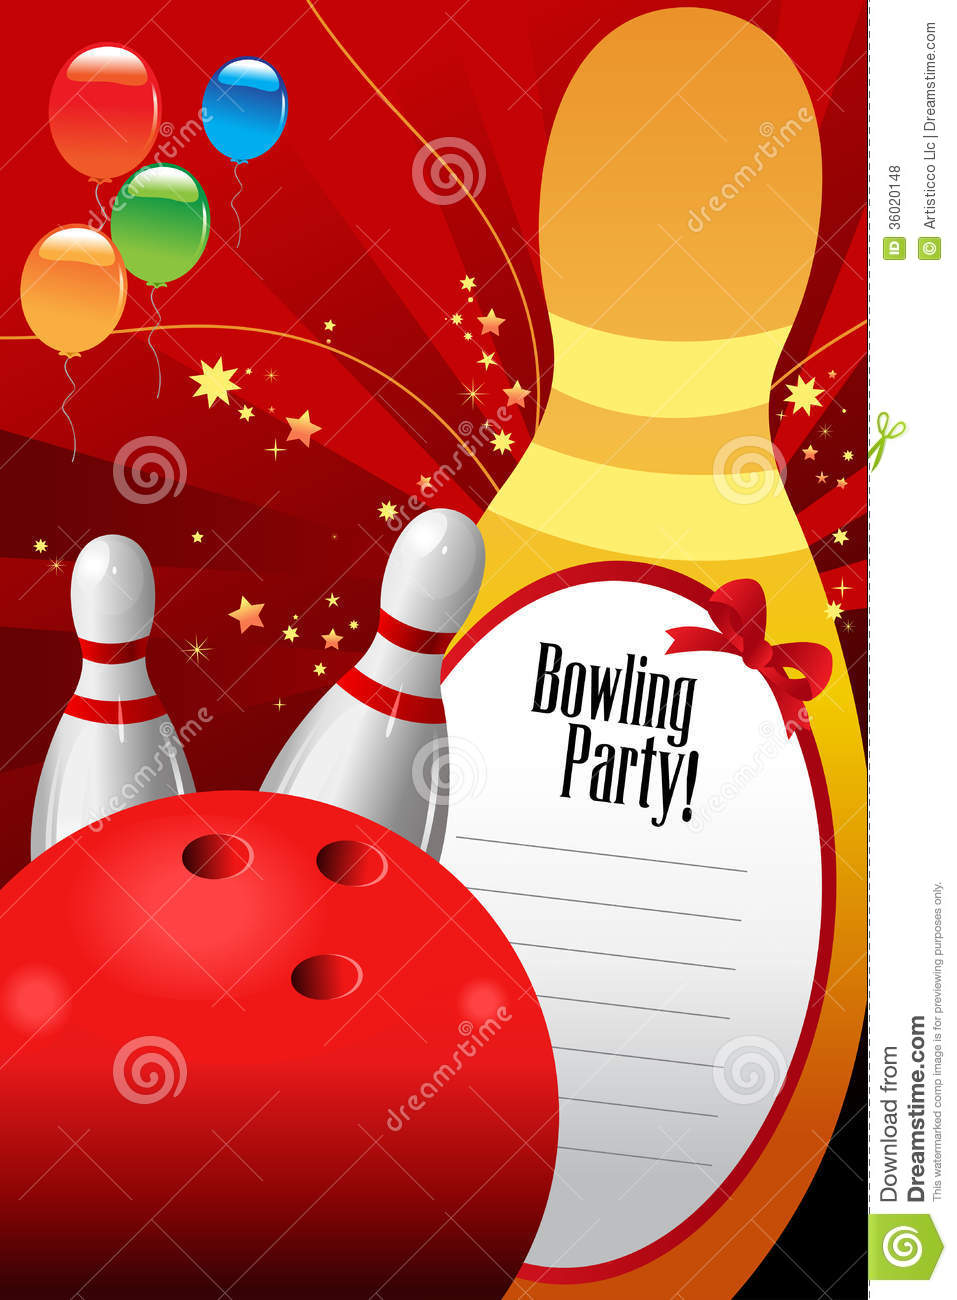 bowling party invite template Minimfagencyco